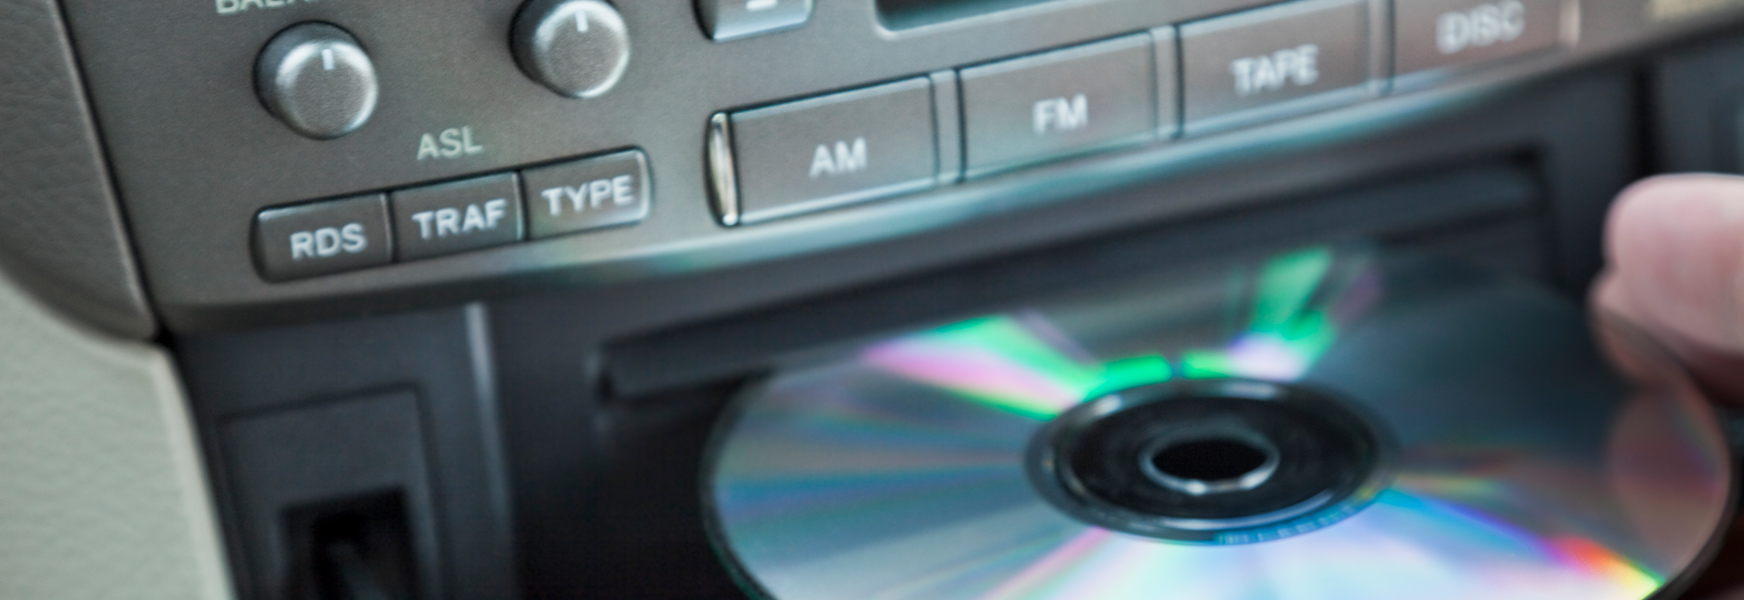 Music CD being loaded into CD player